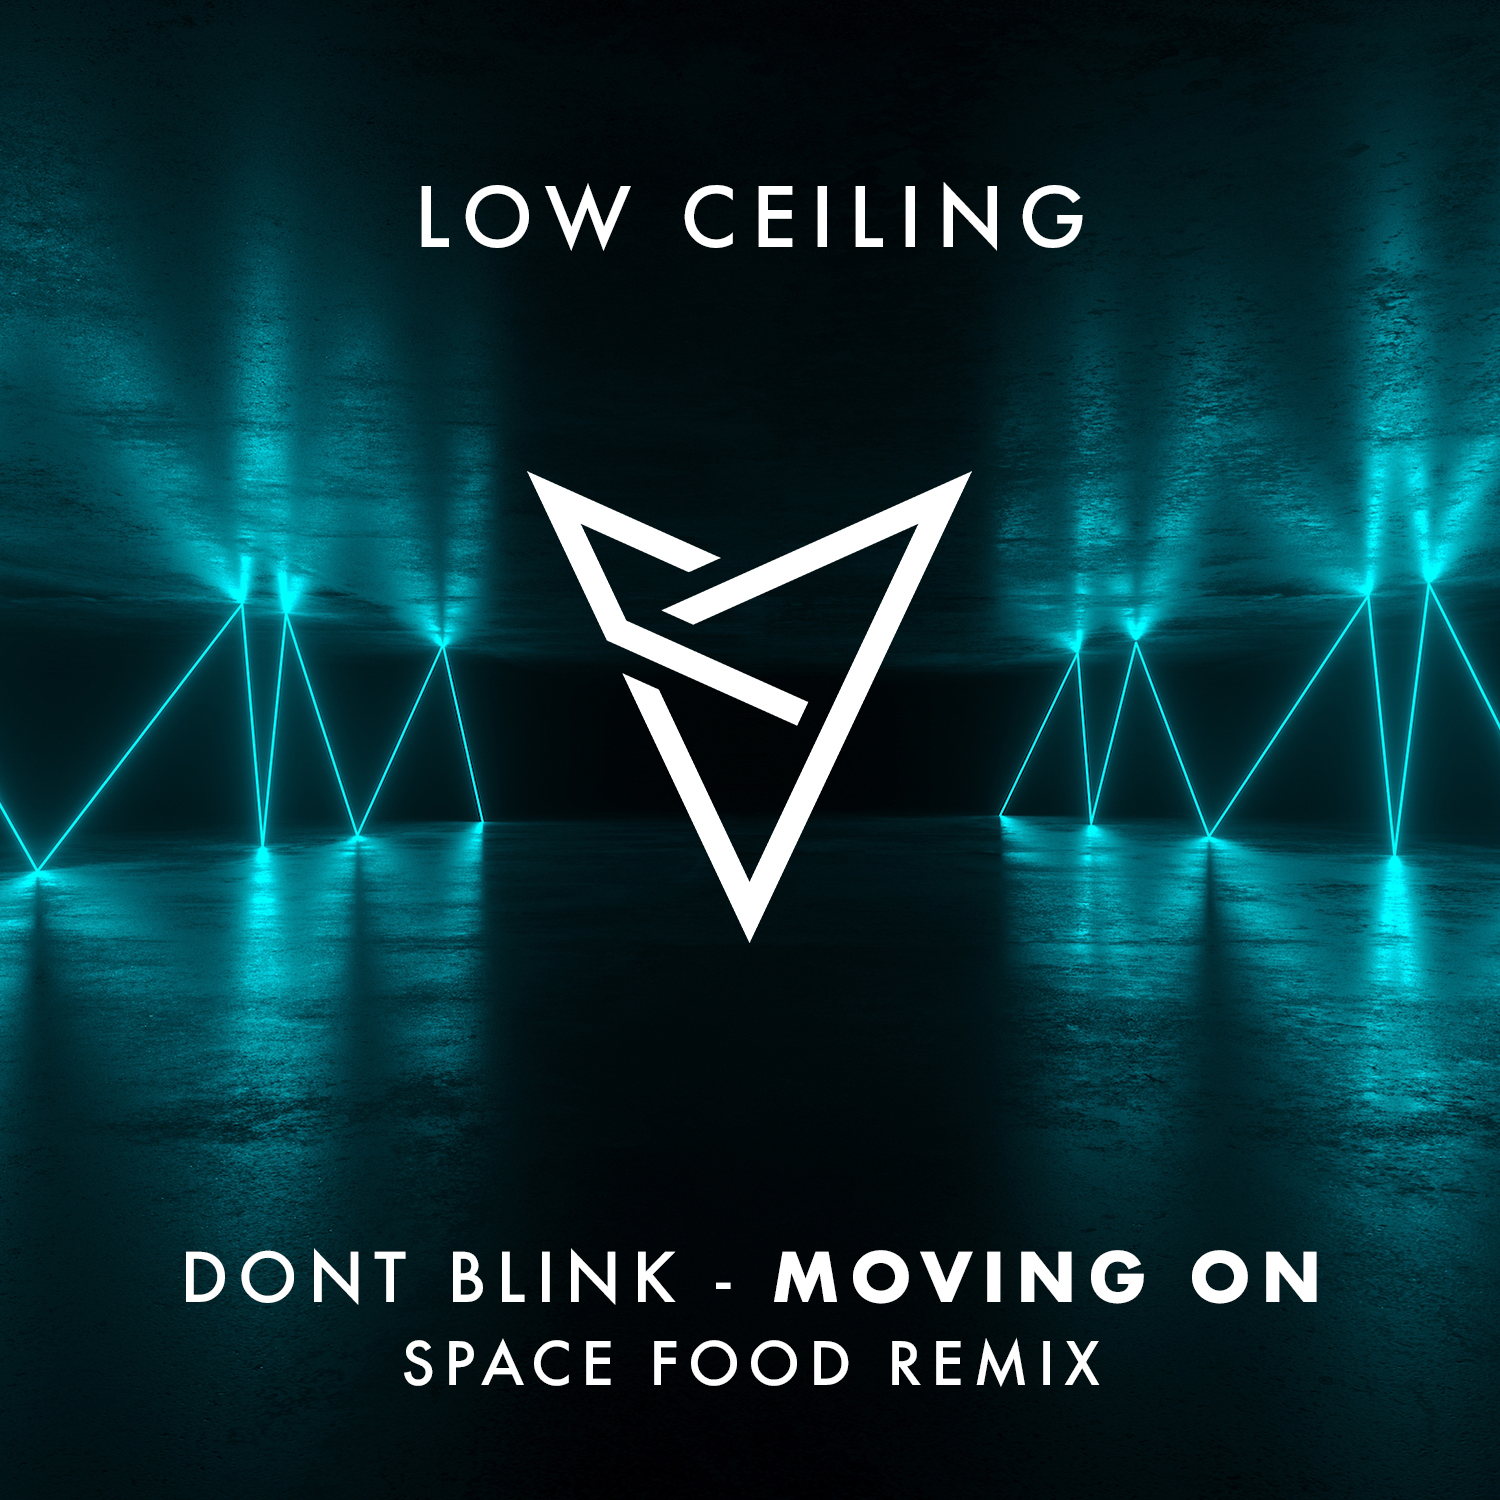 DONT BLINK - MOVING ON (Space Food Remix).jpg